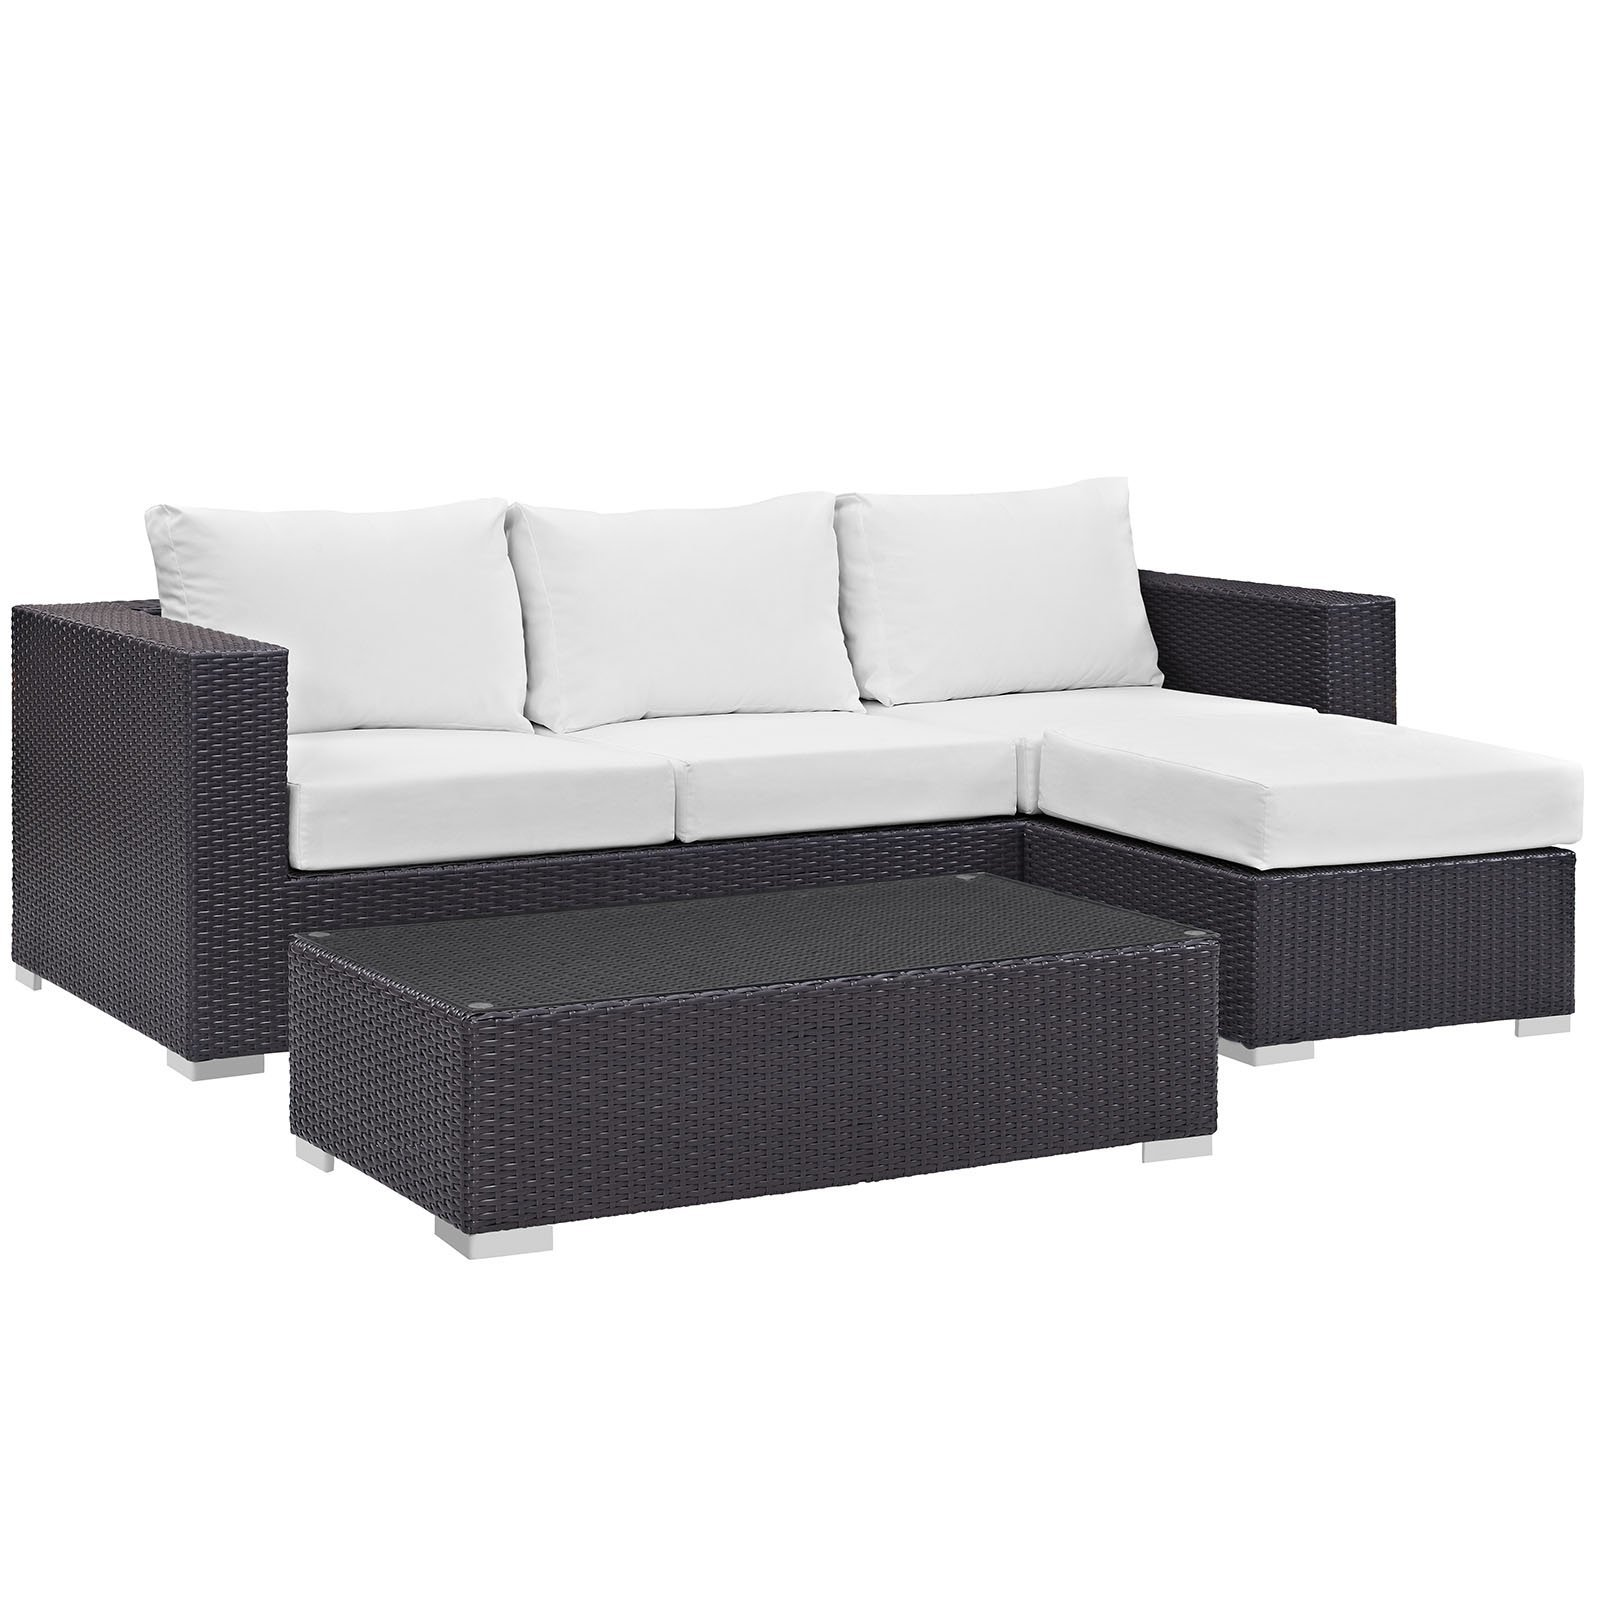 Convene 3 Piece Outdoor Patio Sofa Set Espresso White EEI-2178-EXP-WHI-SET